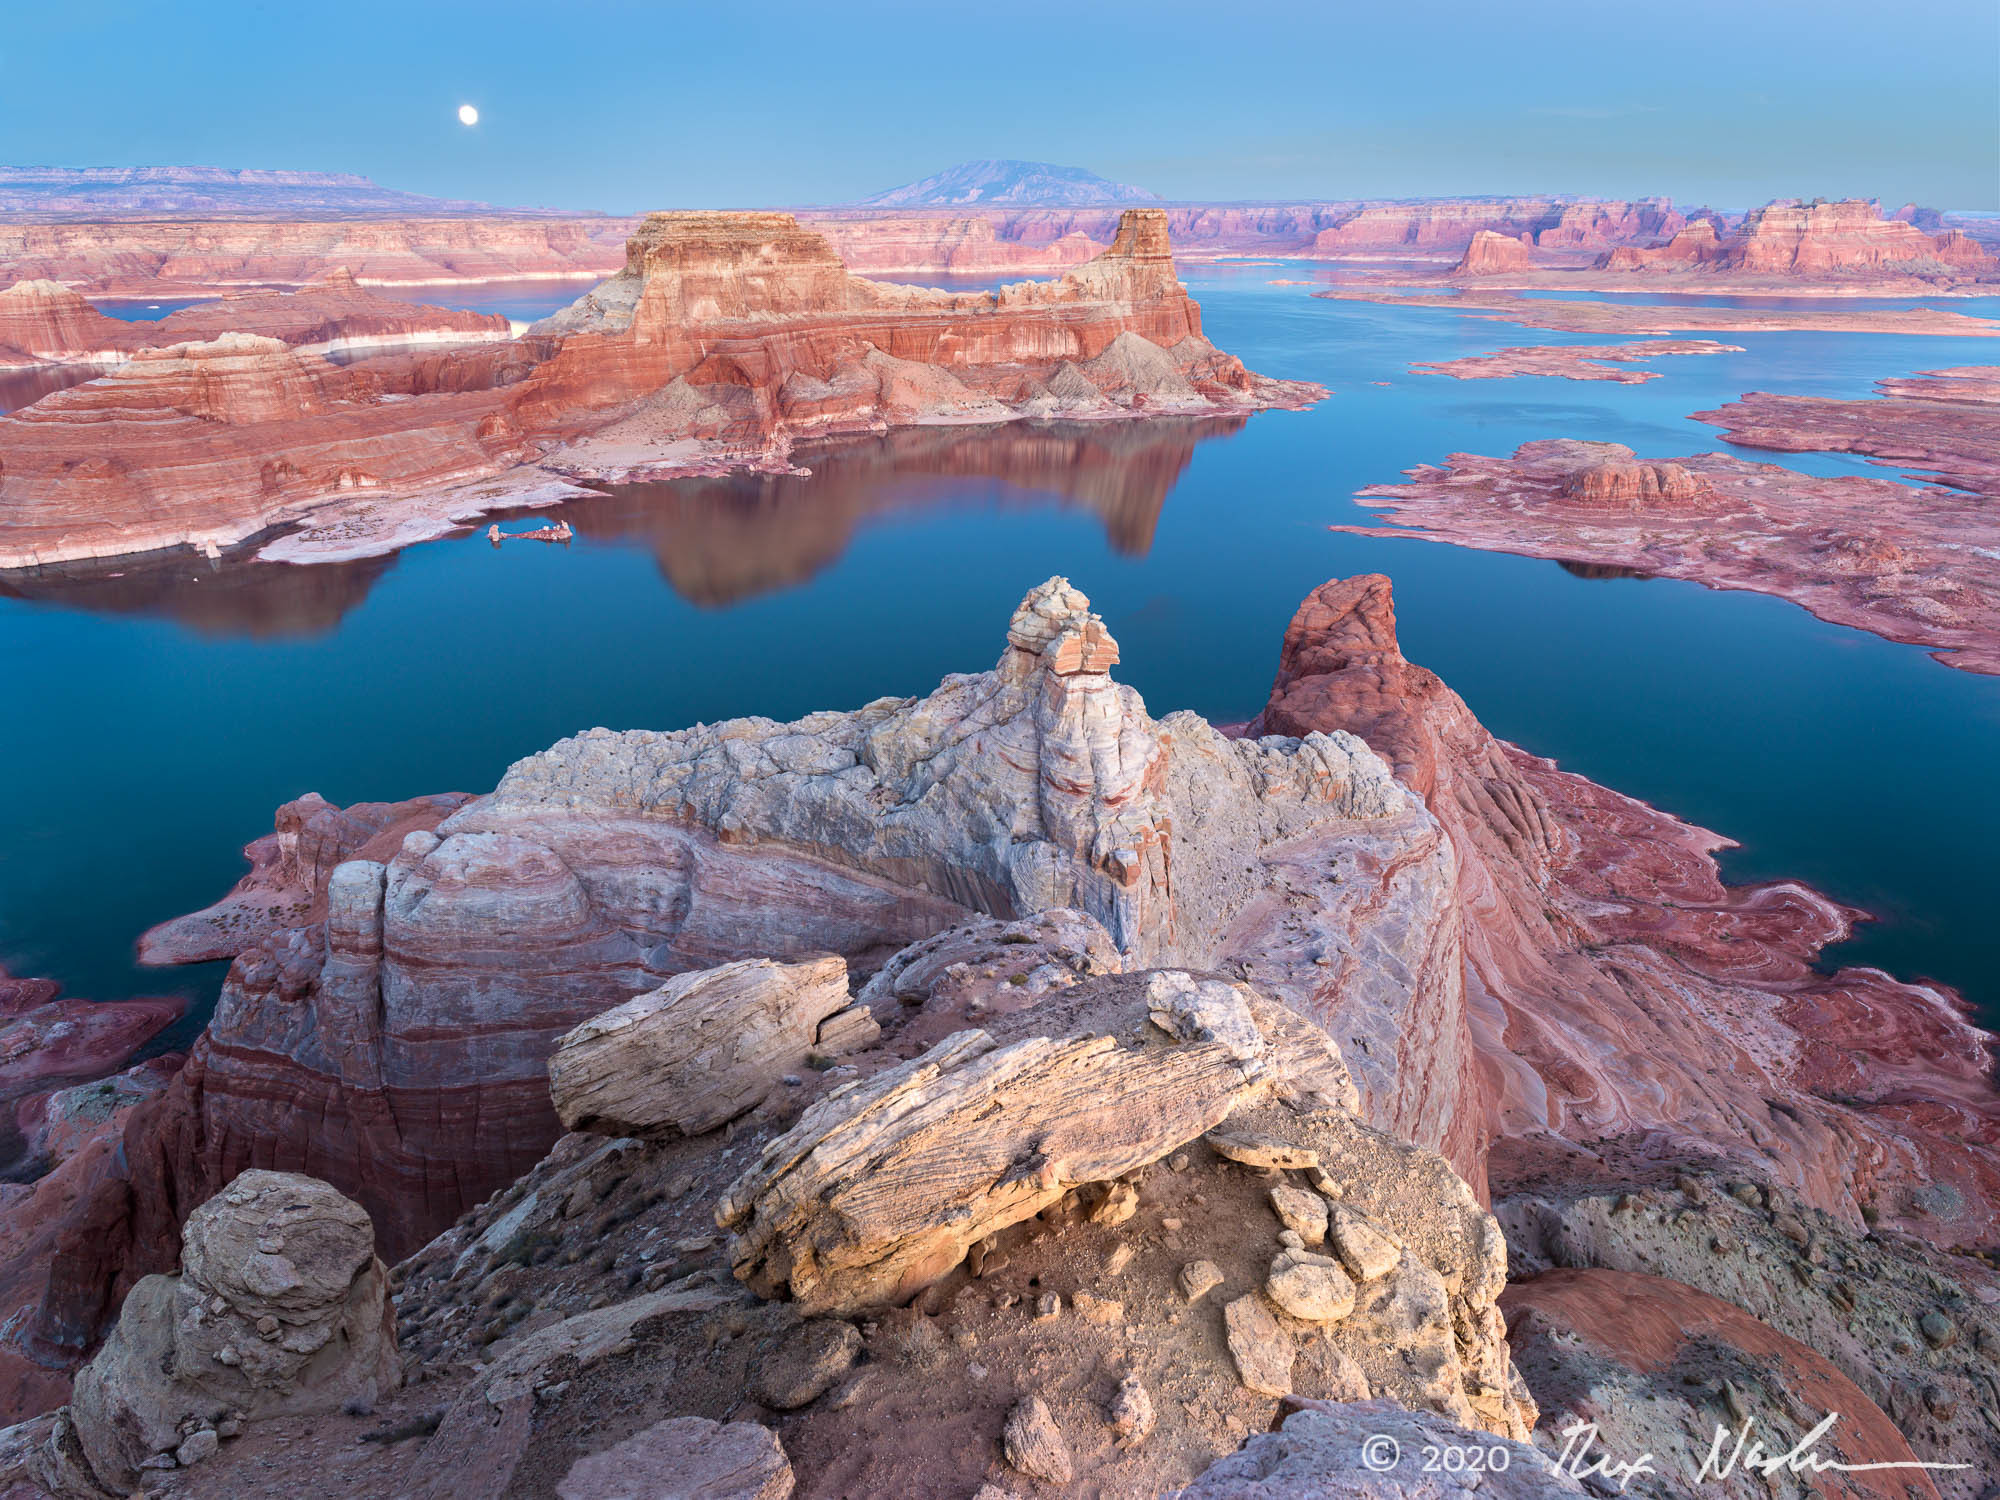 Placement - Lake Powell